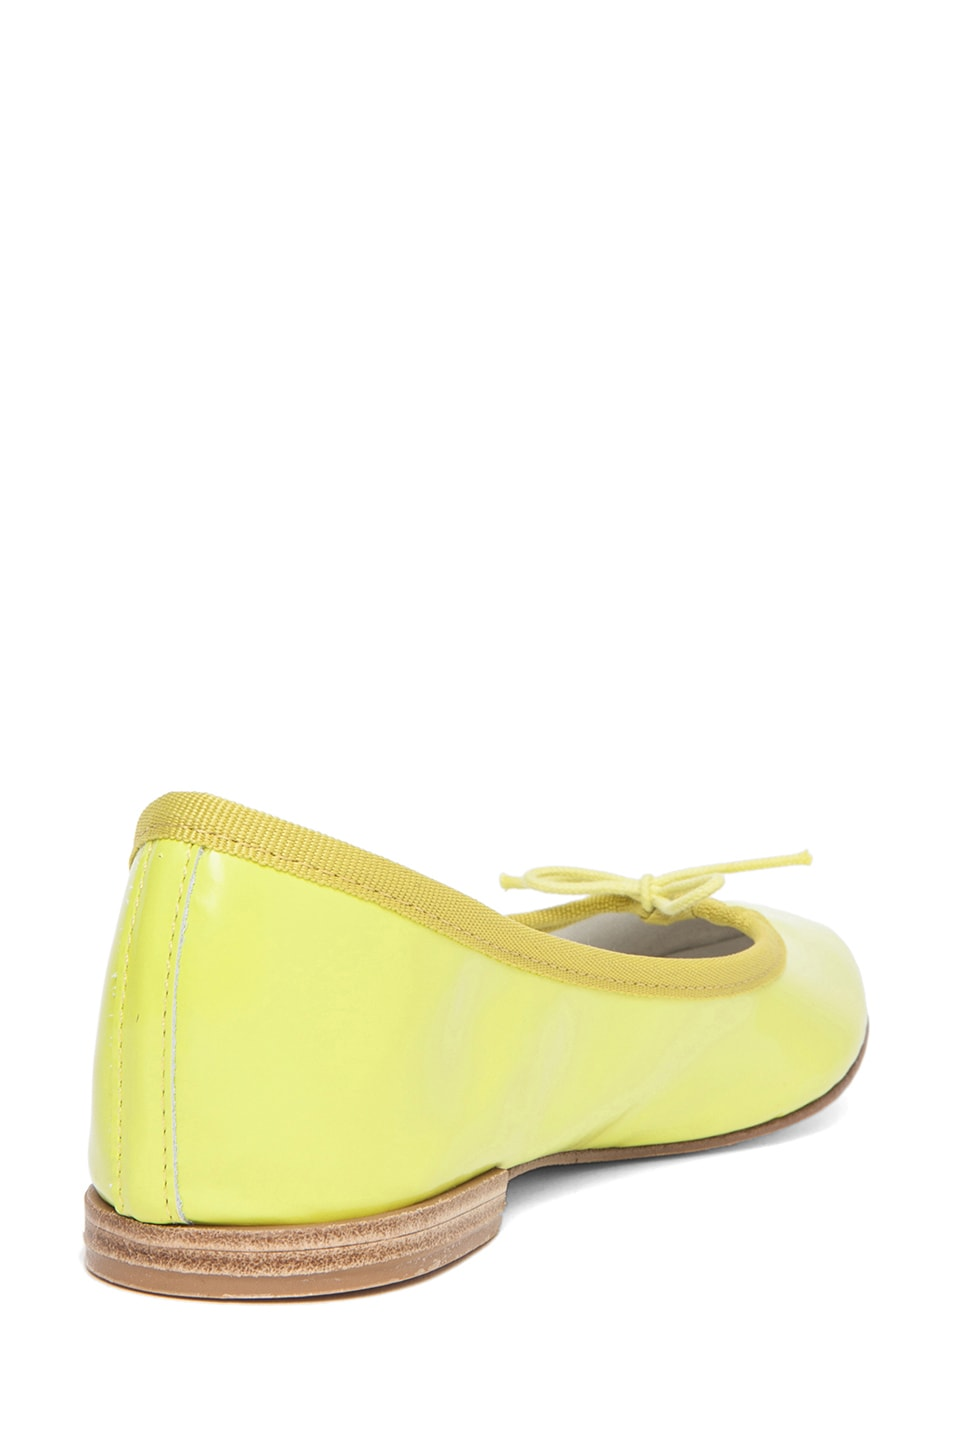 Image 3 of Repetto Glazed Flat in Lime Zest